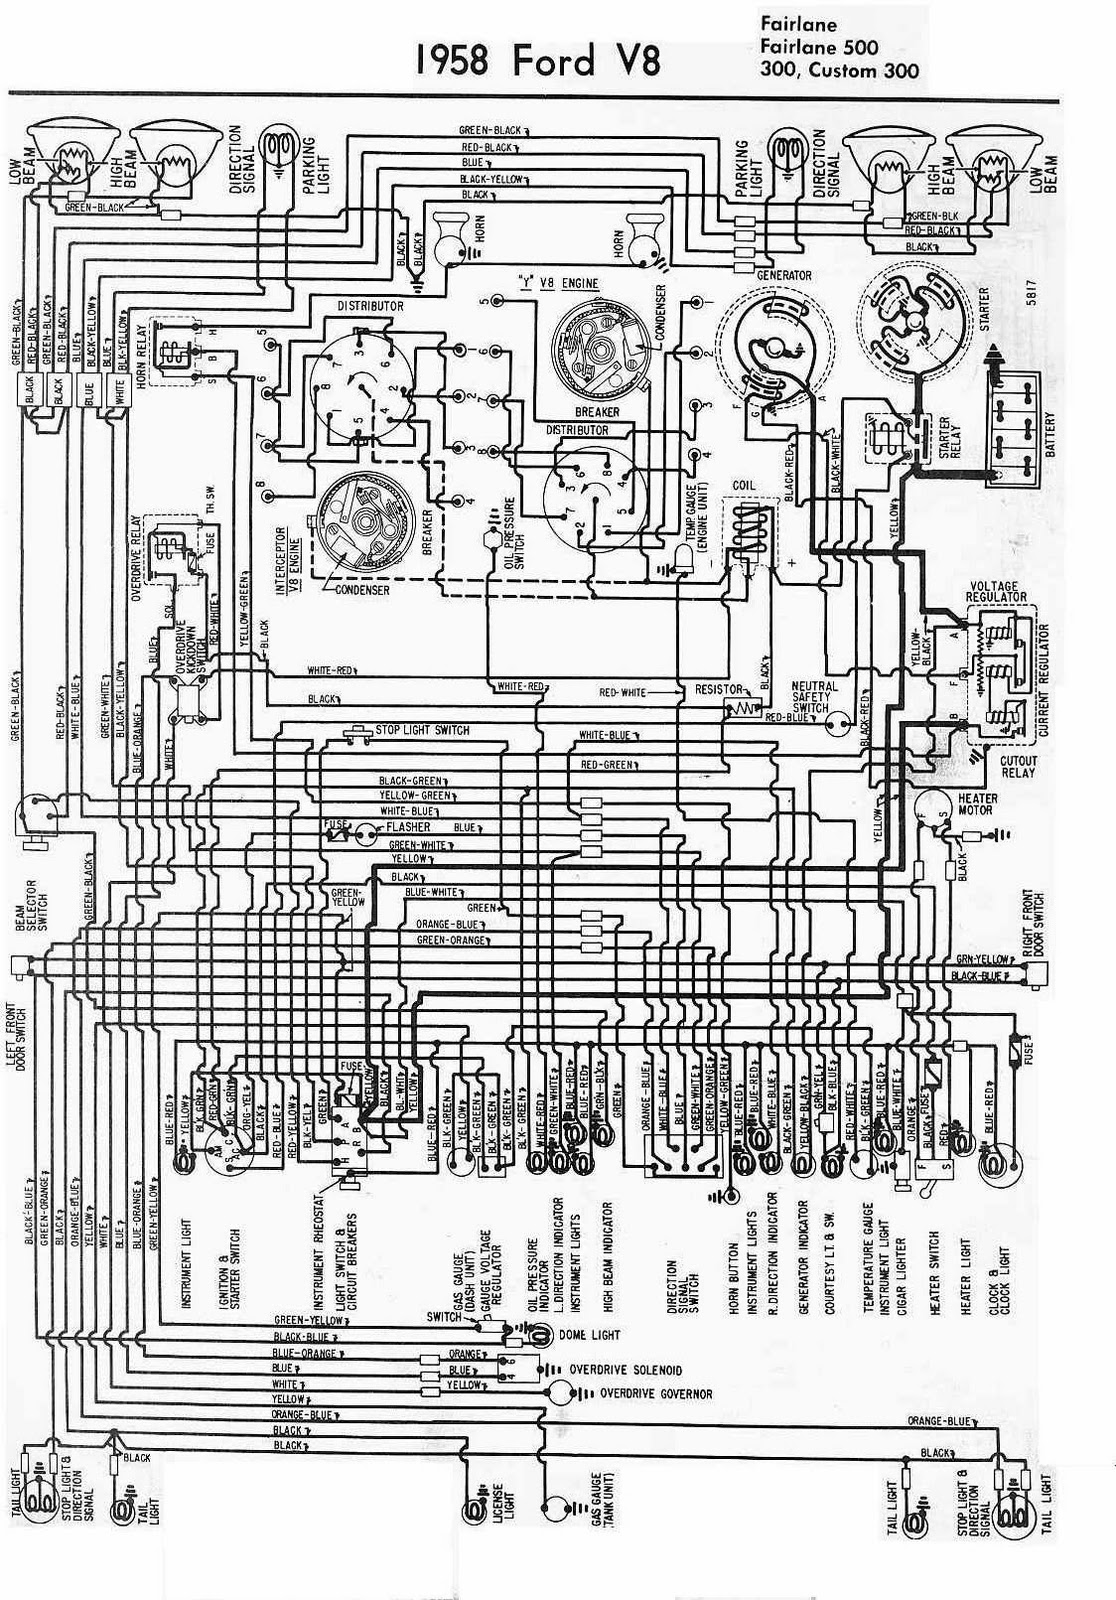 1959 f100 engine diagram online wiring diagram1959 f100 engine diagram data wiring diagrams 1960 f150 1959 f100 engine diagram